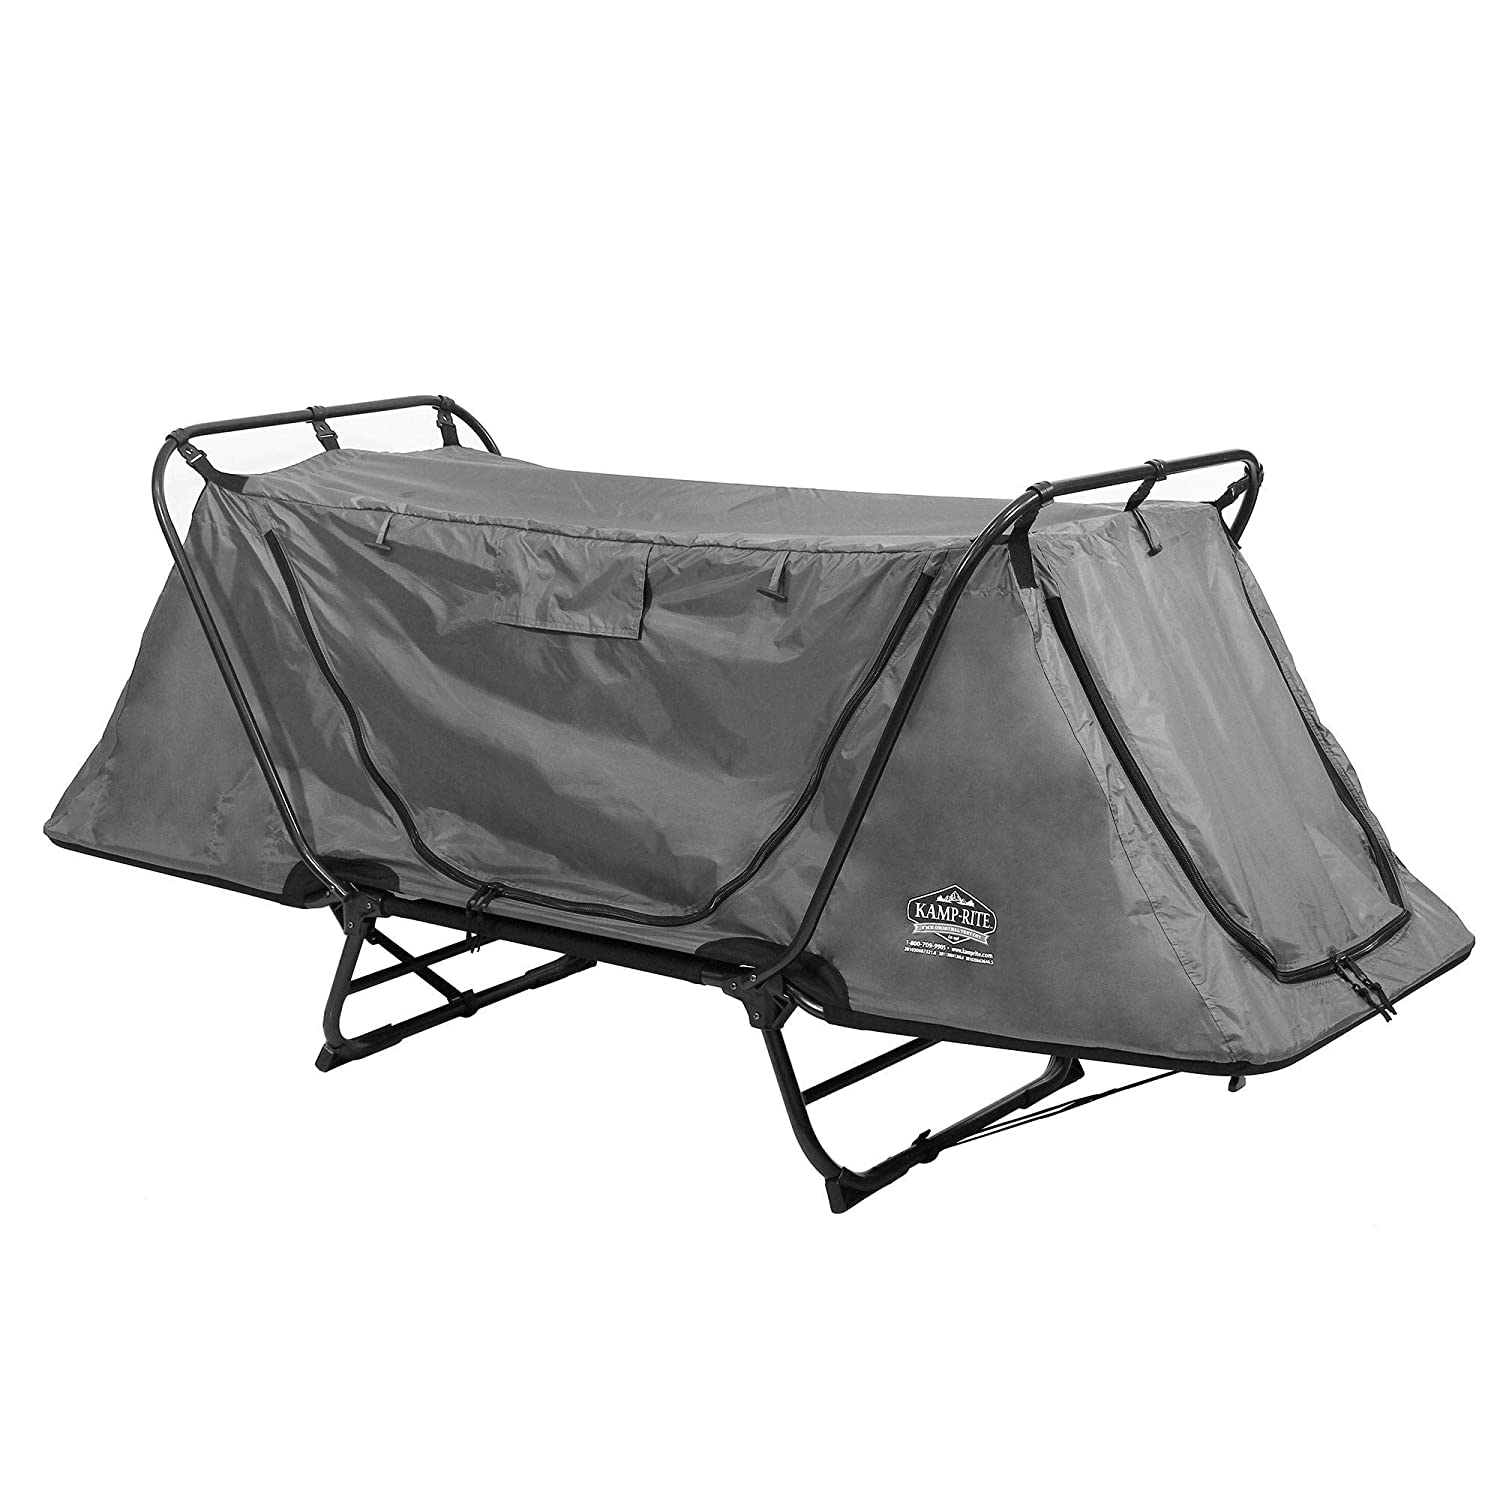 SpeedTent Portable Foldable Mosquito Net Tent Insect protection nets Anti-Bug Net 3 4 Person net tents DarkGreen